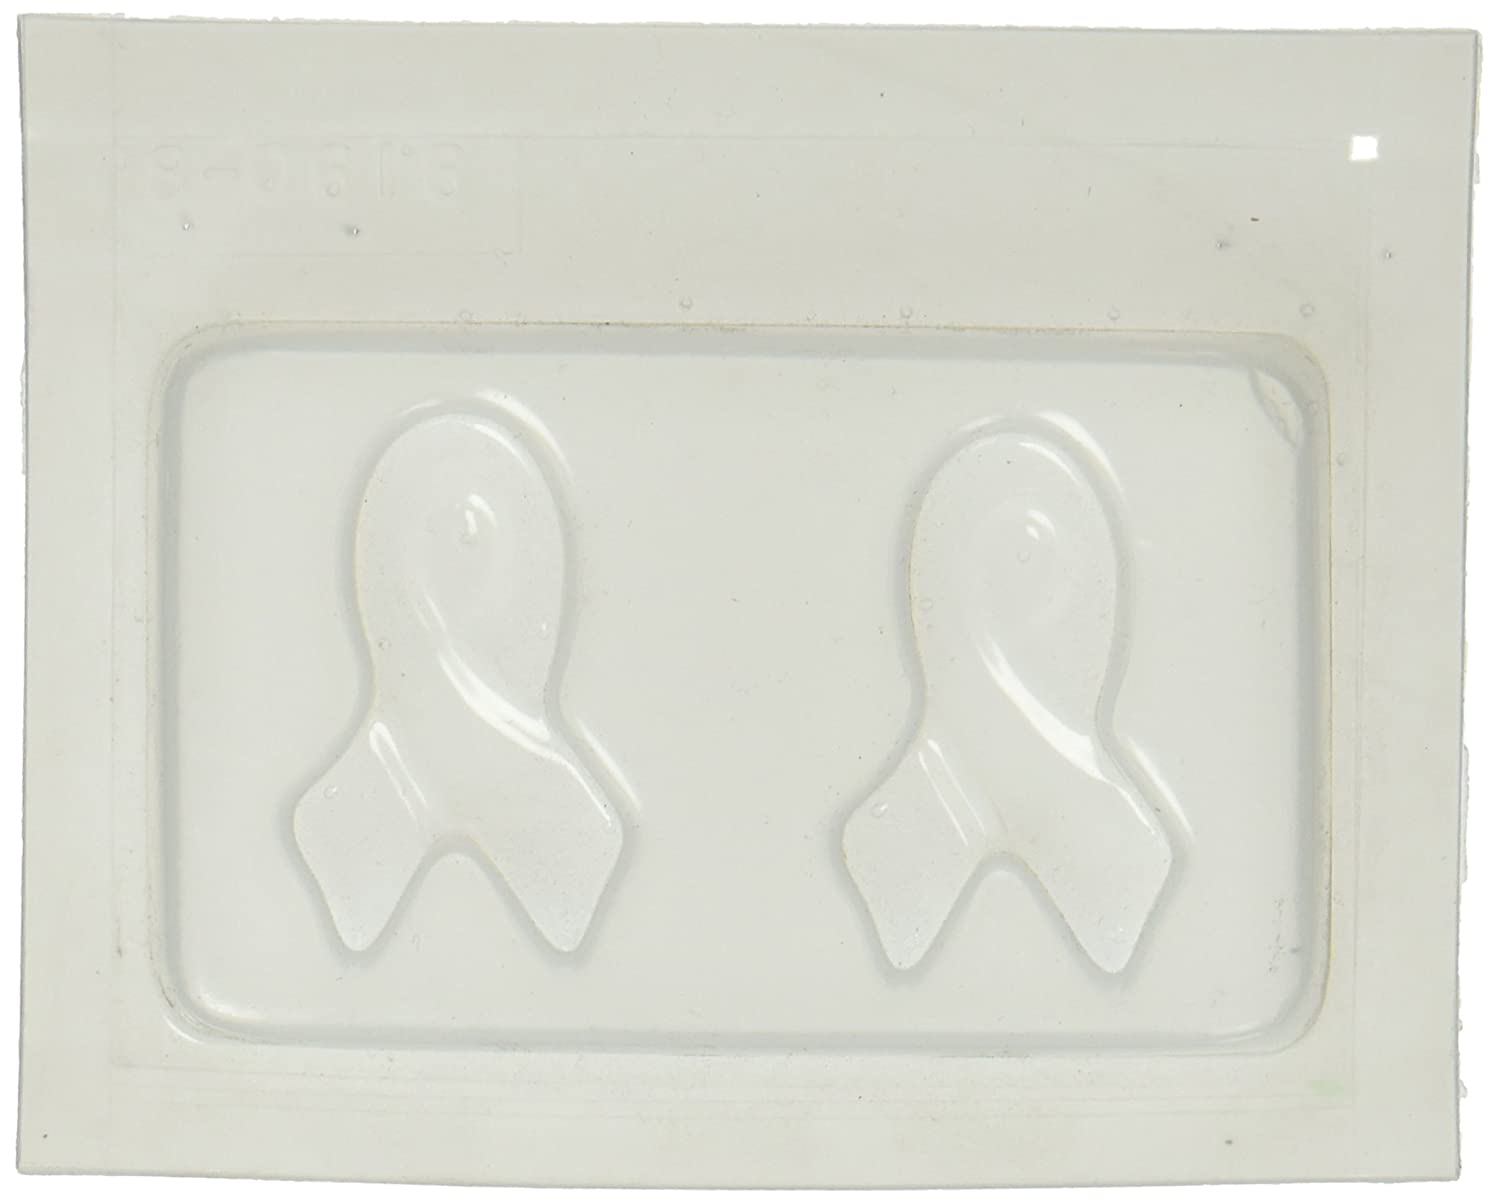 Yaley Resin Jewelry Reusable Plastic Mold 3.5X4.5-2 Small Ribbons 08-0616H